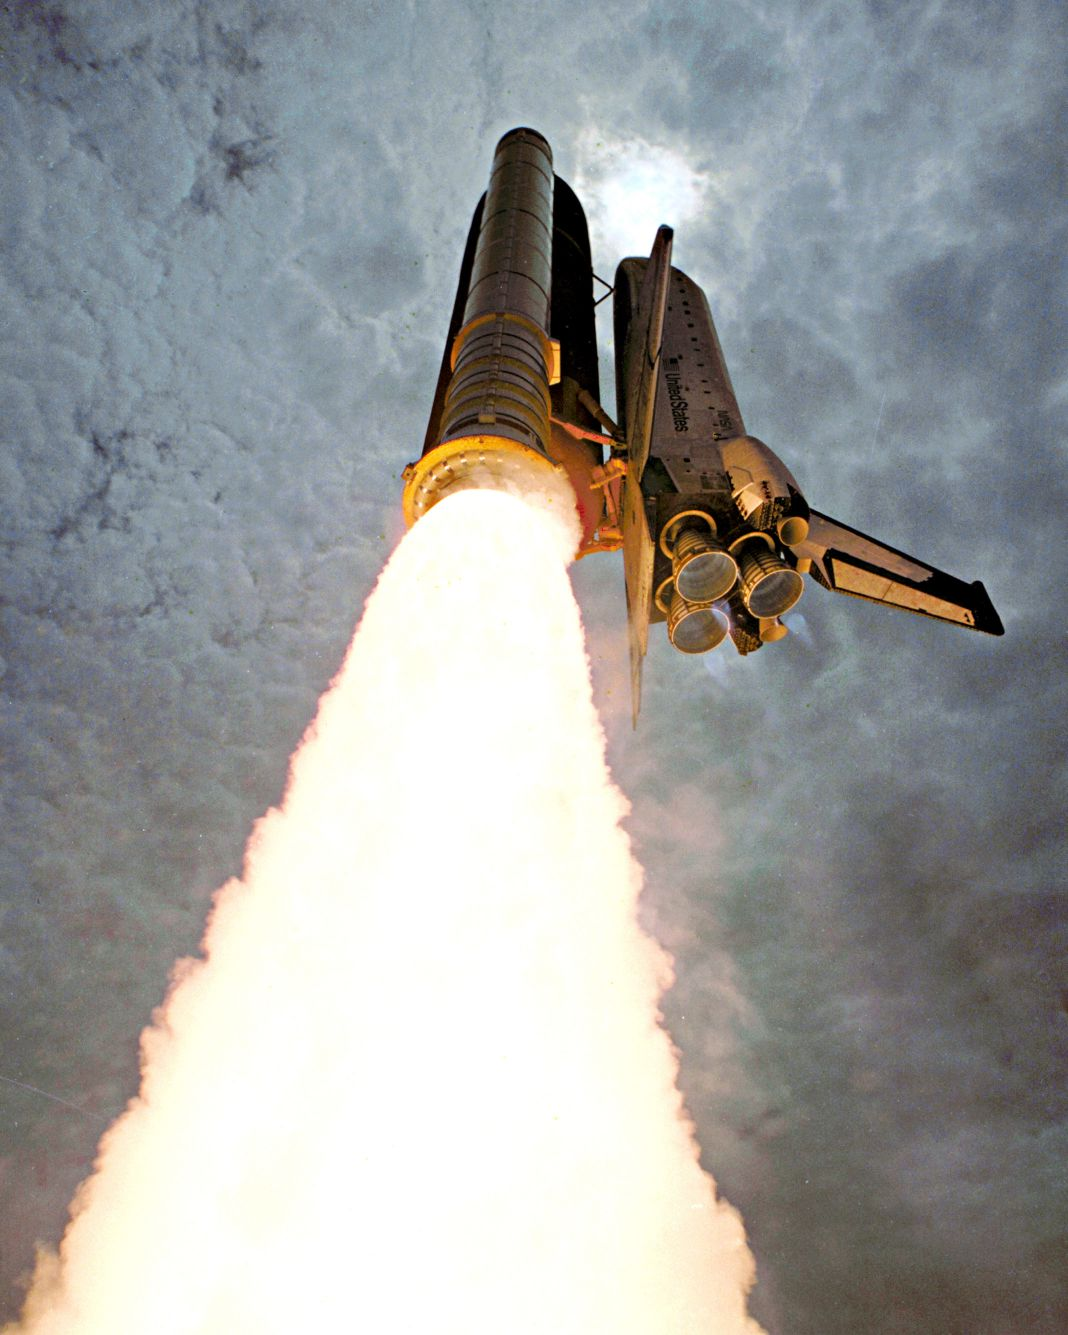 space shuttle columbia take off - photo #2